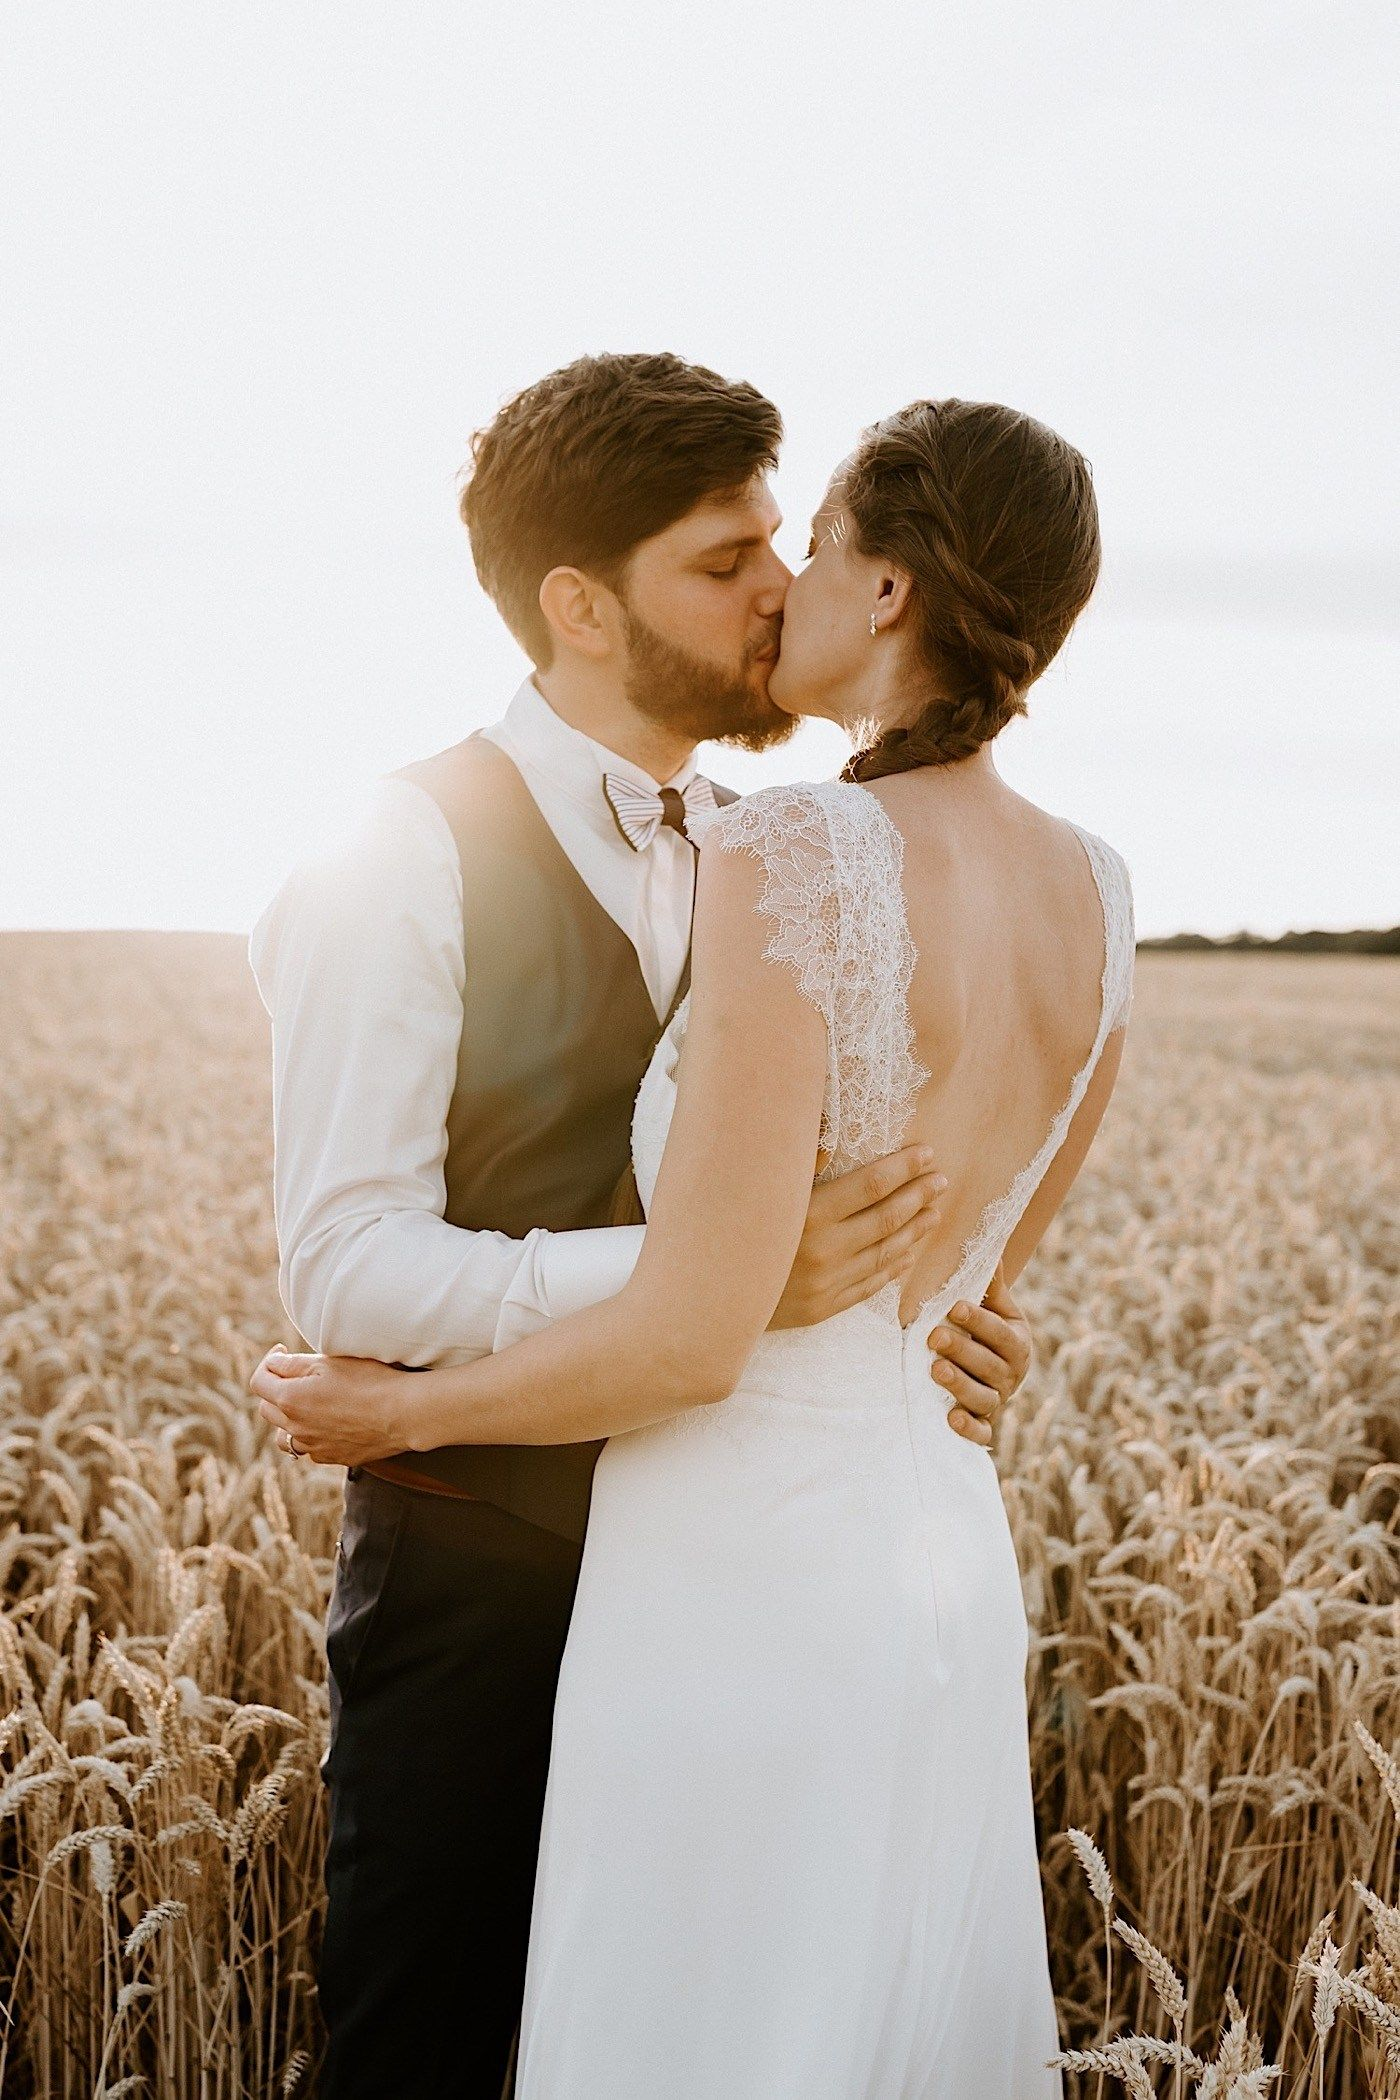 France After Wedding Day Session In Champagne Aurelie Antoine Anais Possamai Photography Rural Wedding Countryside Wedding France Wedding